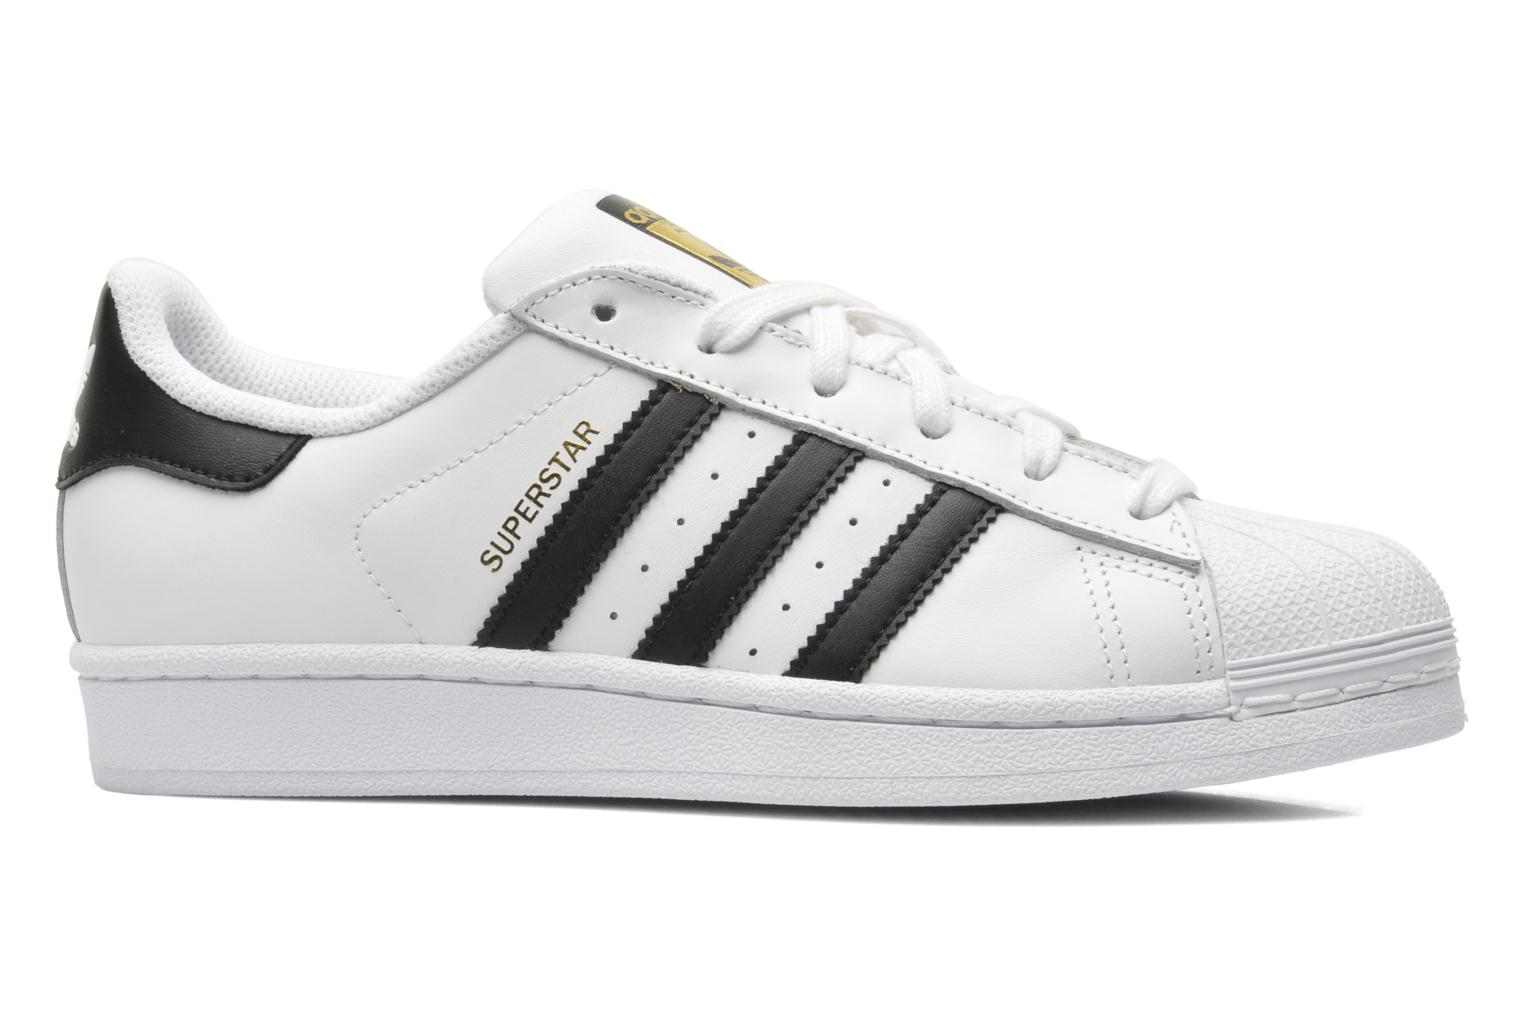 arrives 851e0 3b2e6 Bambino Adidas Originals Superstar J Sneakers Bianco